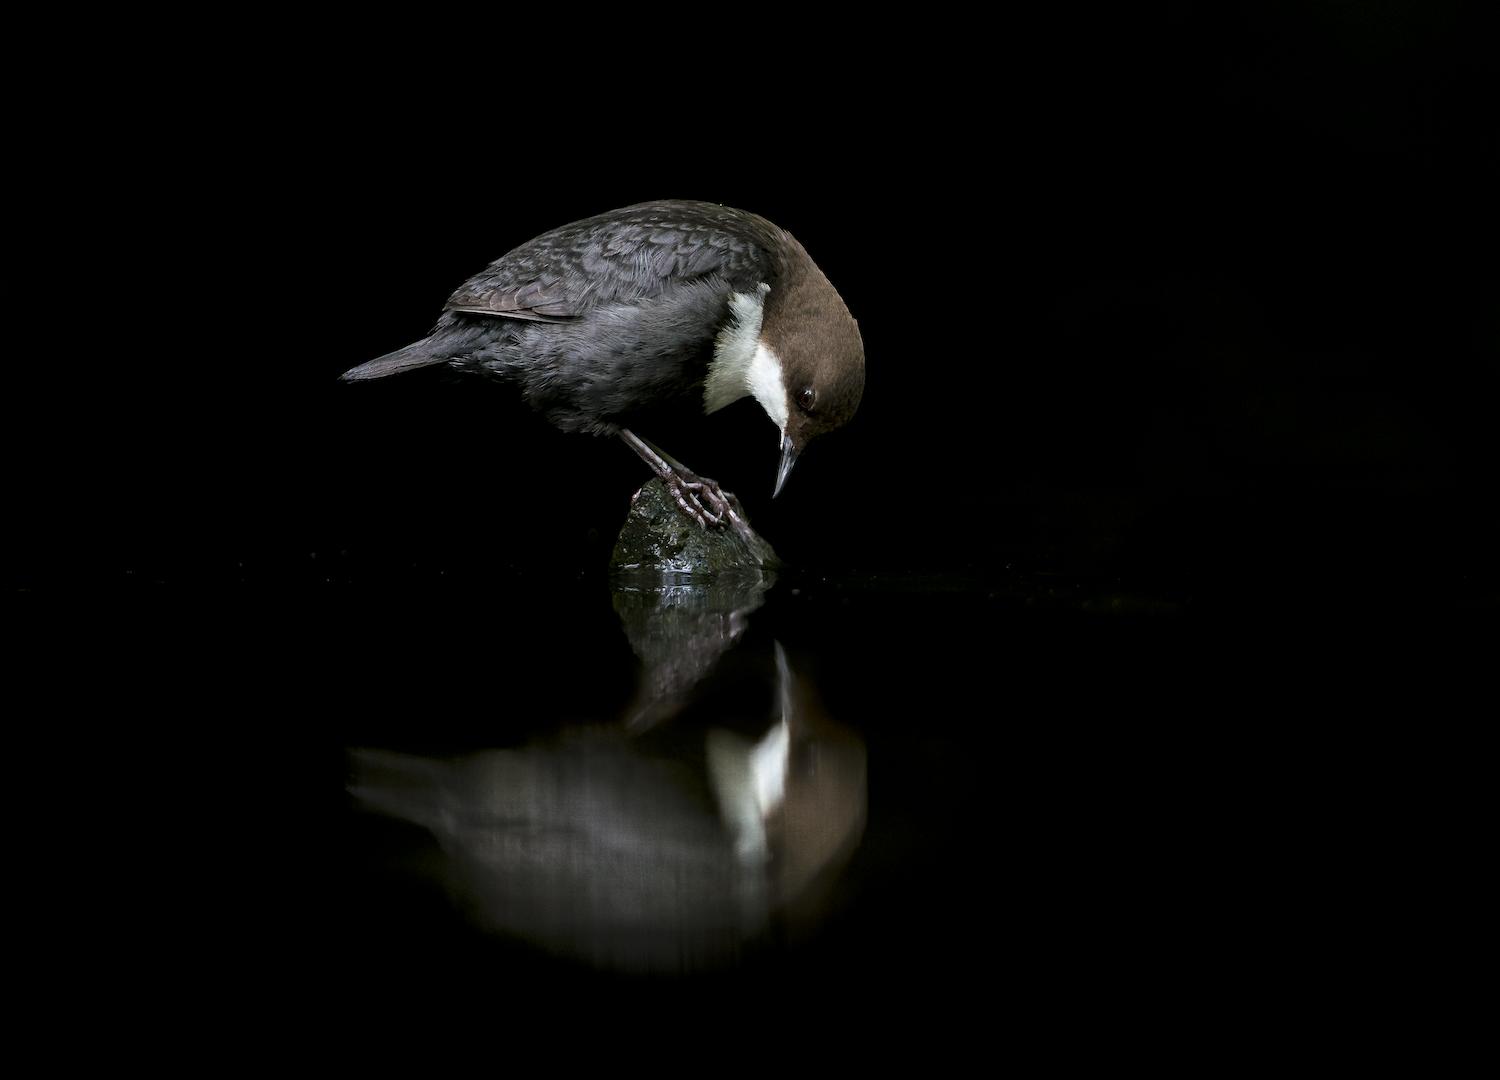 A White-Throated Dipper looking at its reflection in perfectly still black water.